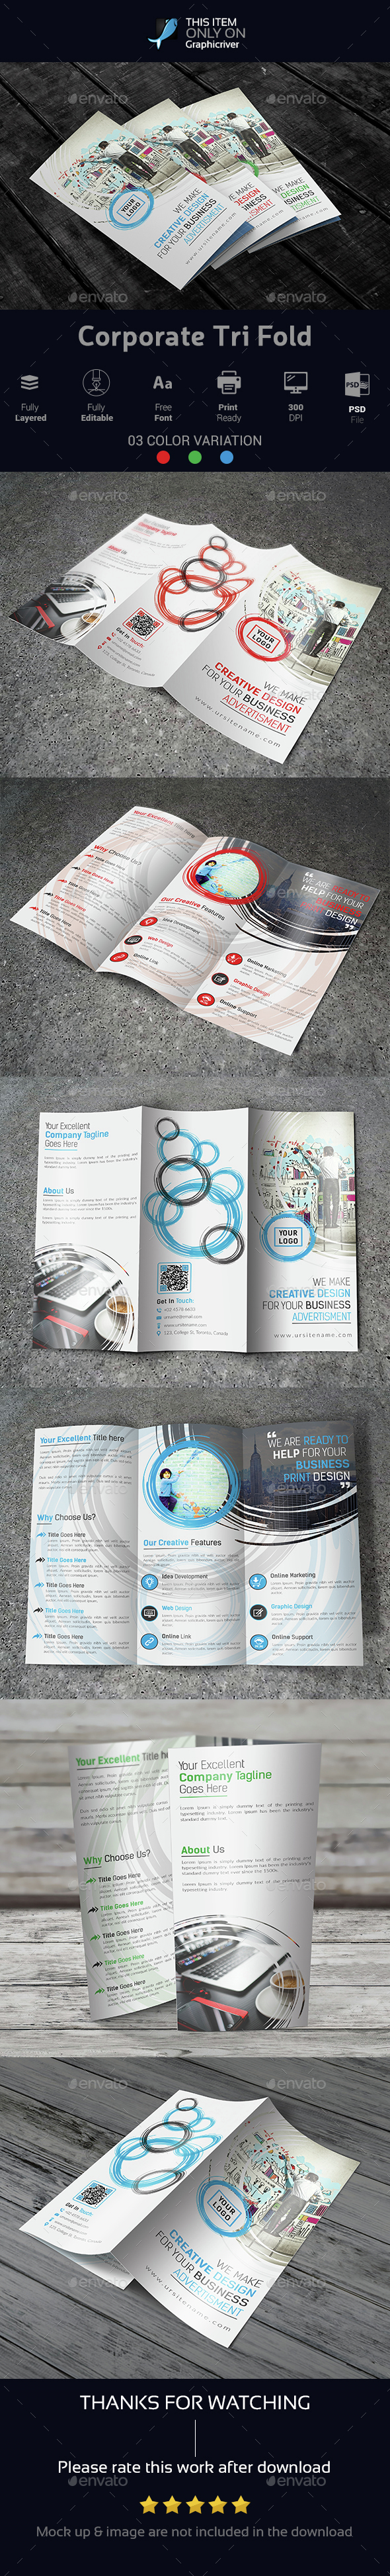 Corporate Tri Fold Brochure 02 - Brochures Print Templates